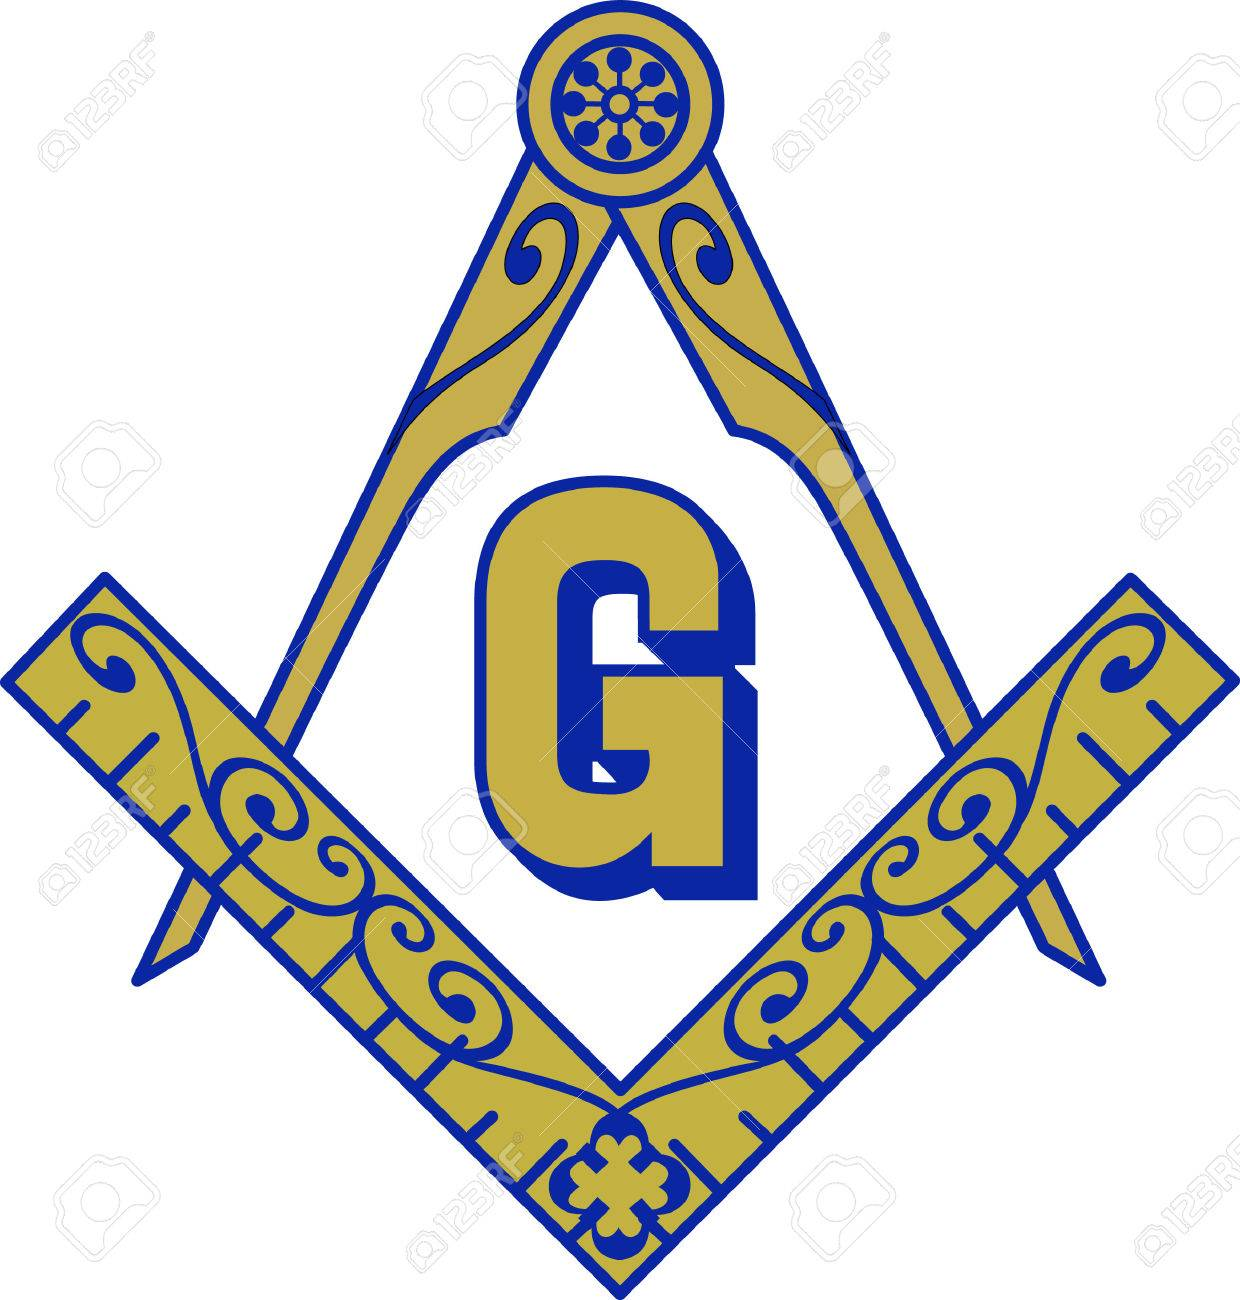 The Symbol Represents Freemasonry It Stands For Faith Hope